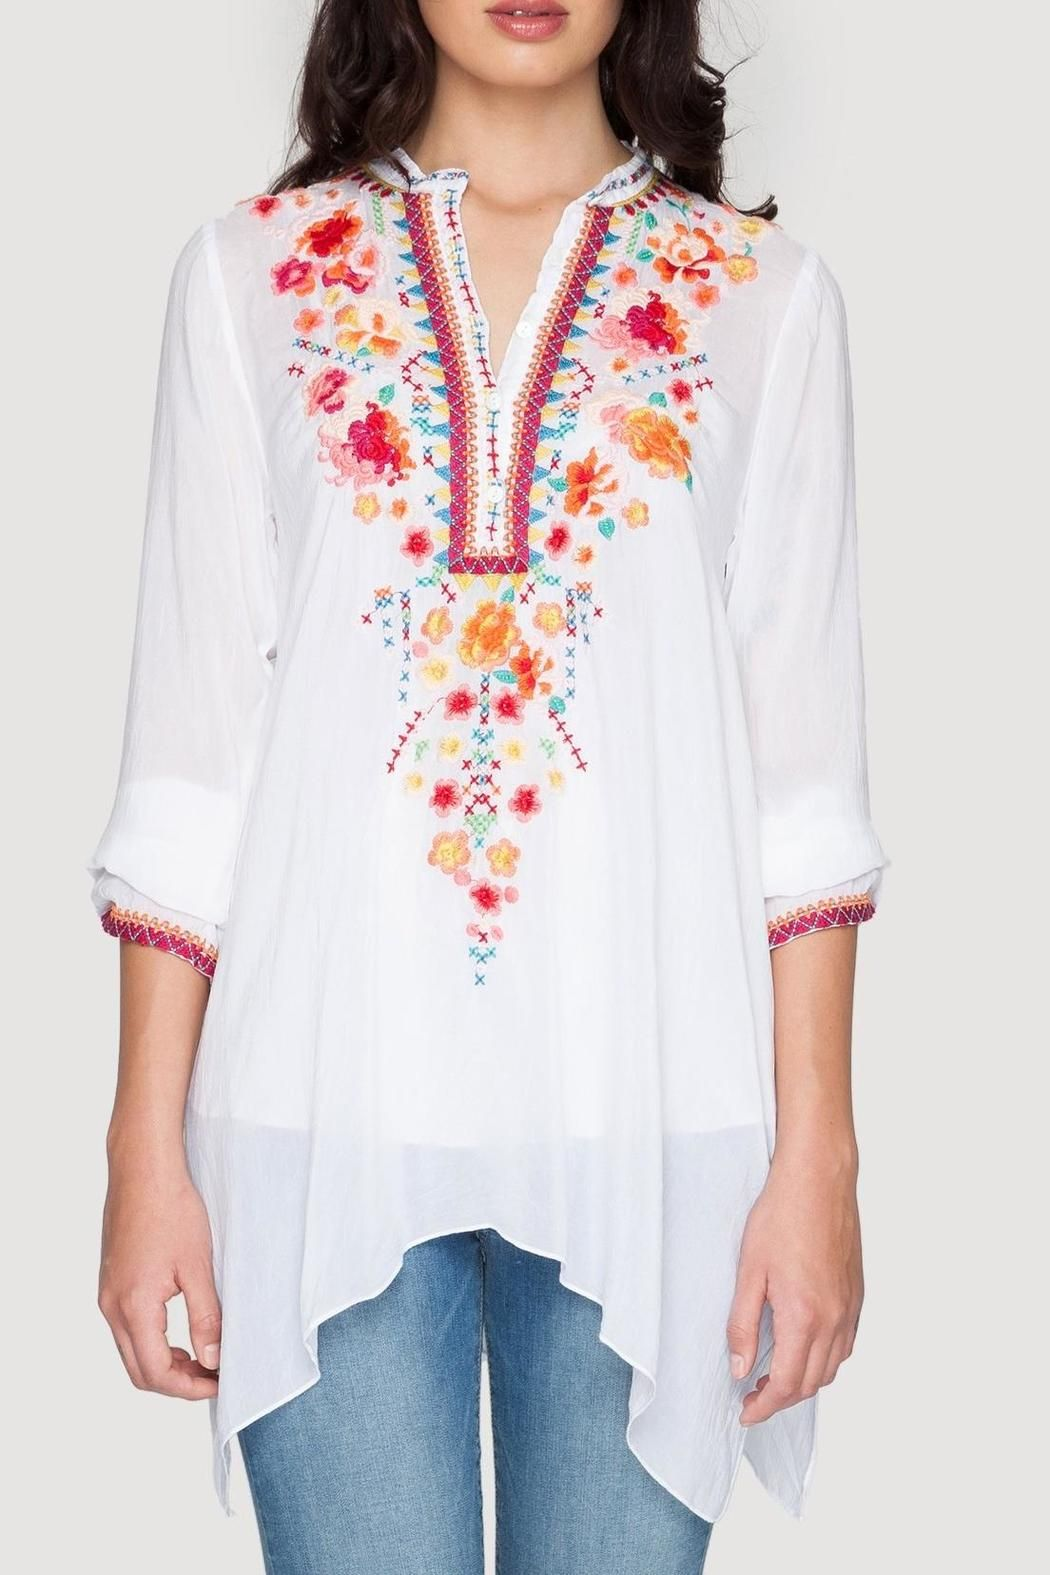 50e1a7400d4 The Johnny Was SABLE TUNIC features a playful scattered floral embroidery  design in vibrant red, pink, orange, and blue. With a three button henley  front, ...